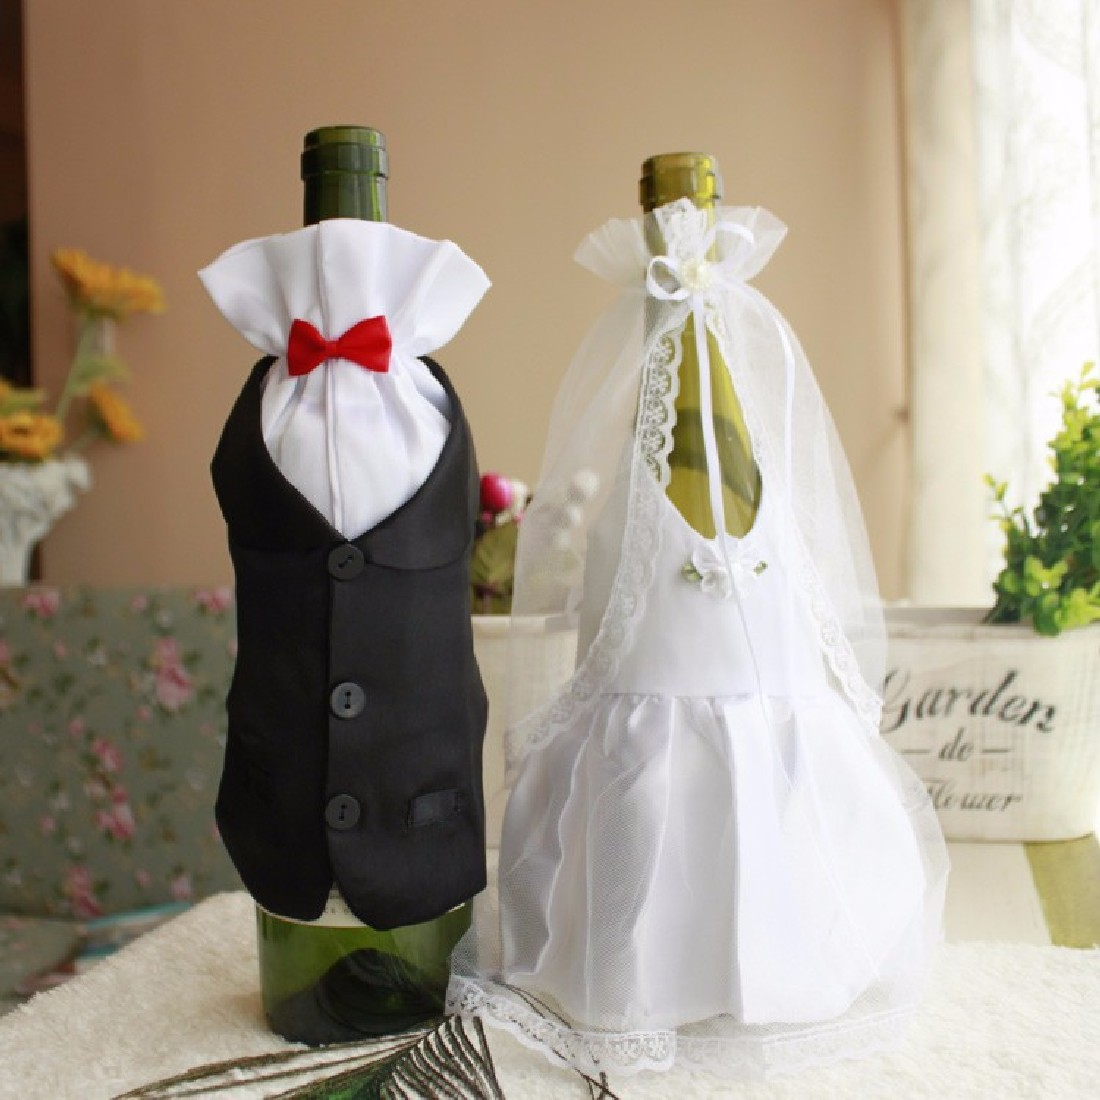 Wedding Decorations Bride And Groom Dress Wine Glass